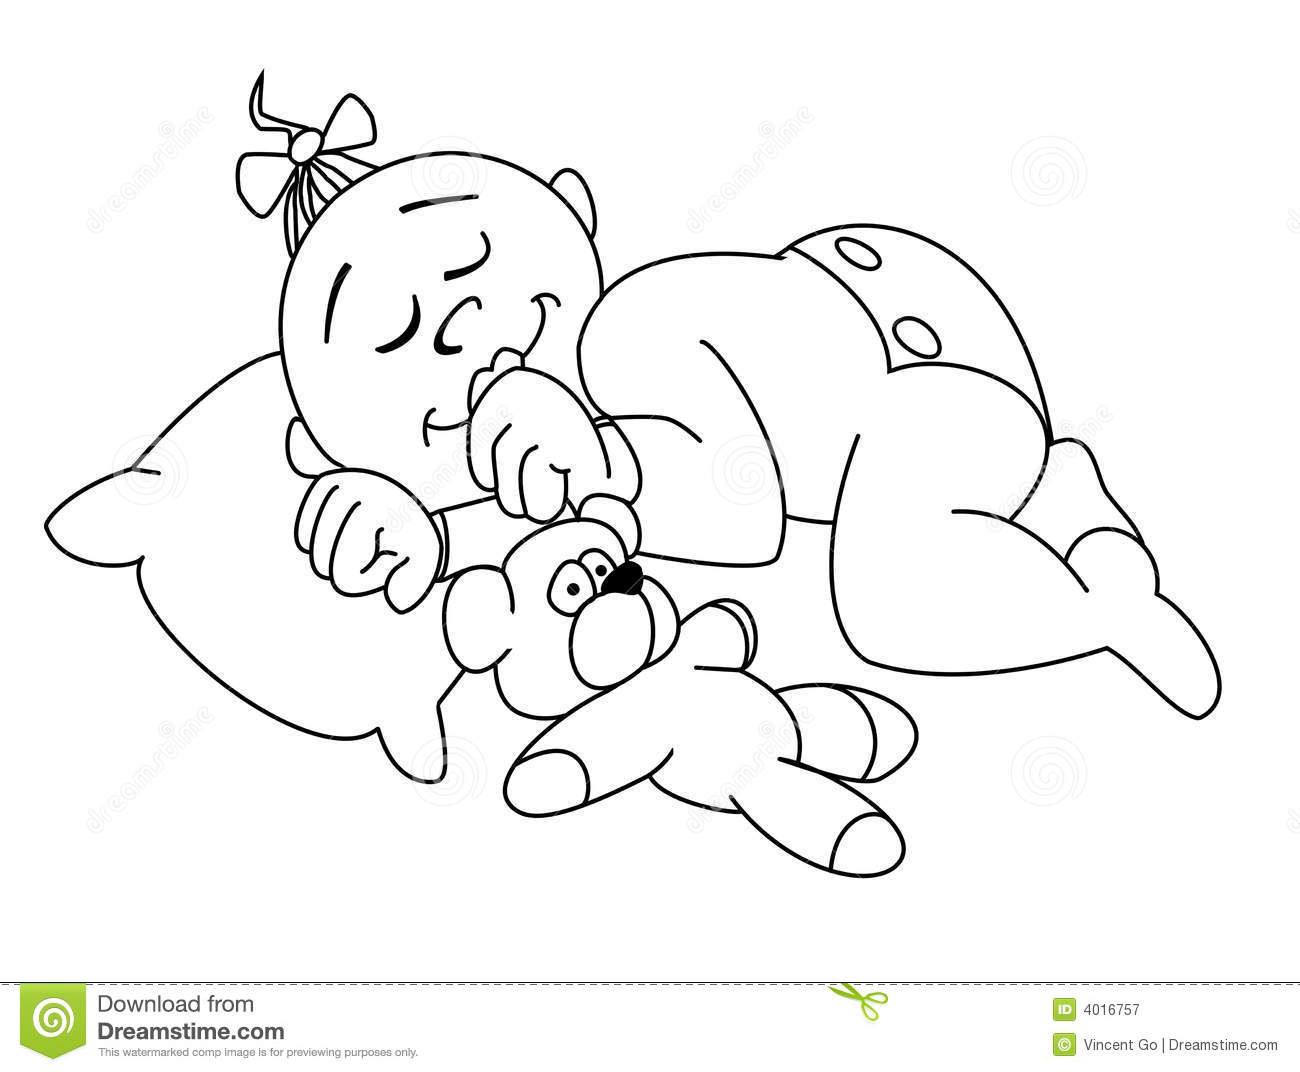 Baby sleep stock illustration. Image of child, girl, sleep ...